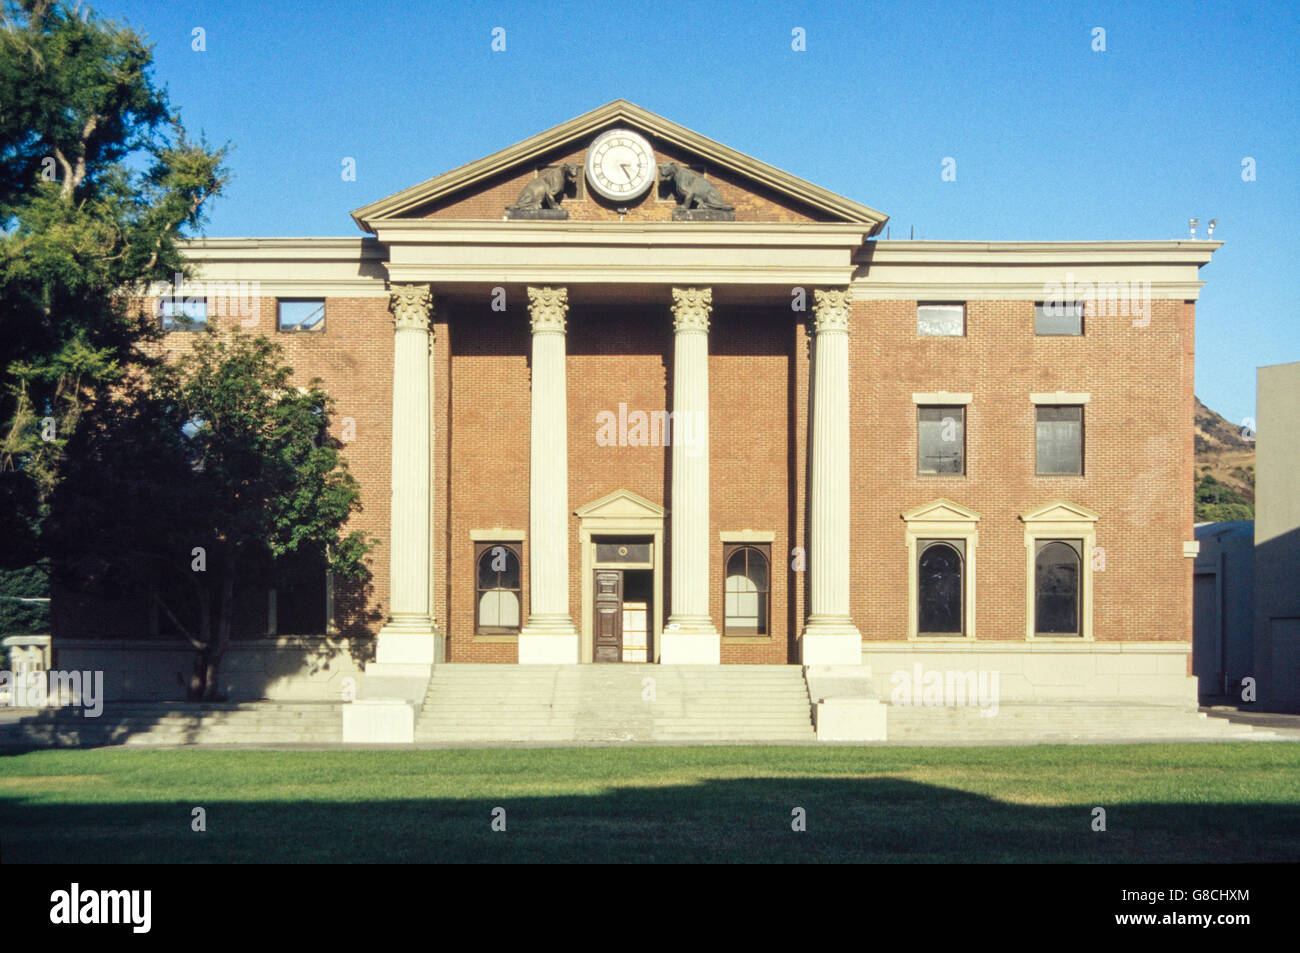 archive-image-of-hill-valley-courthouse-